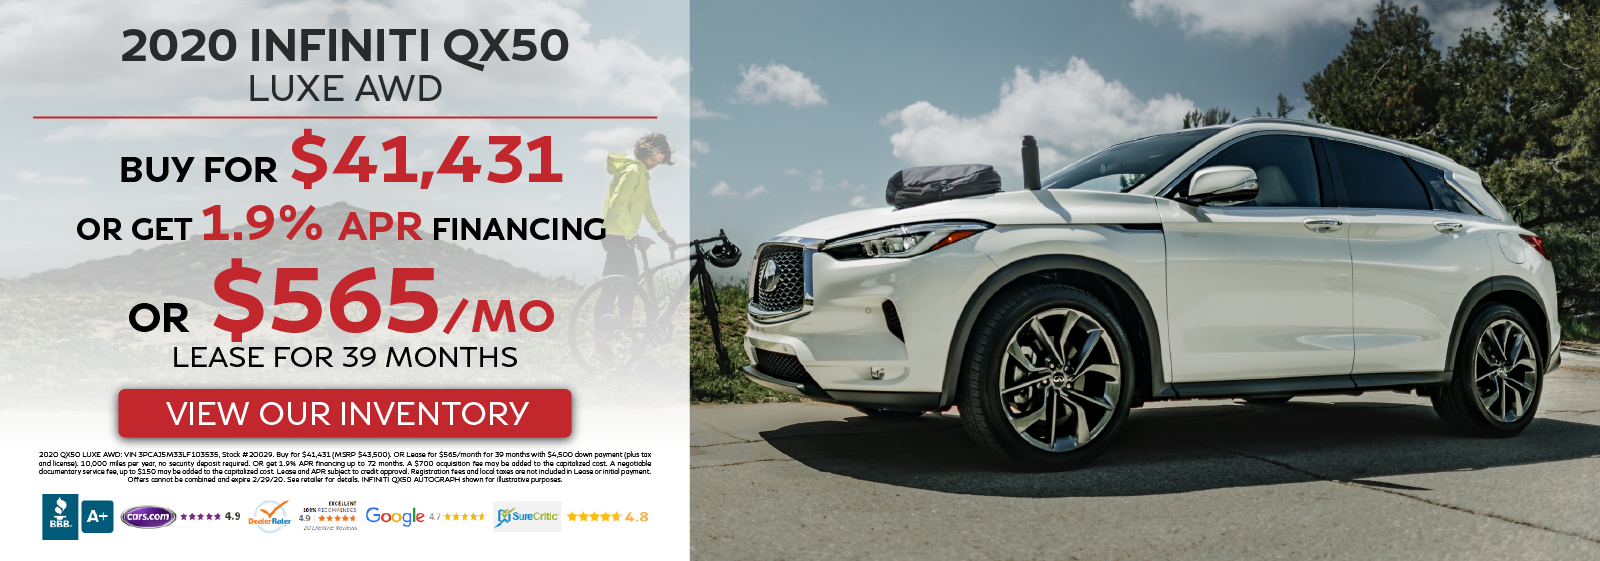 2020 QX50 LUXE AWD - Buy for $41,431 OR Get 1.9% APR Financing OR Lease for $565 per month for 39 months - View Our Inventory!